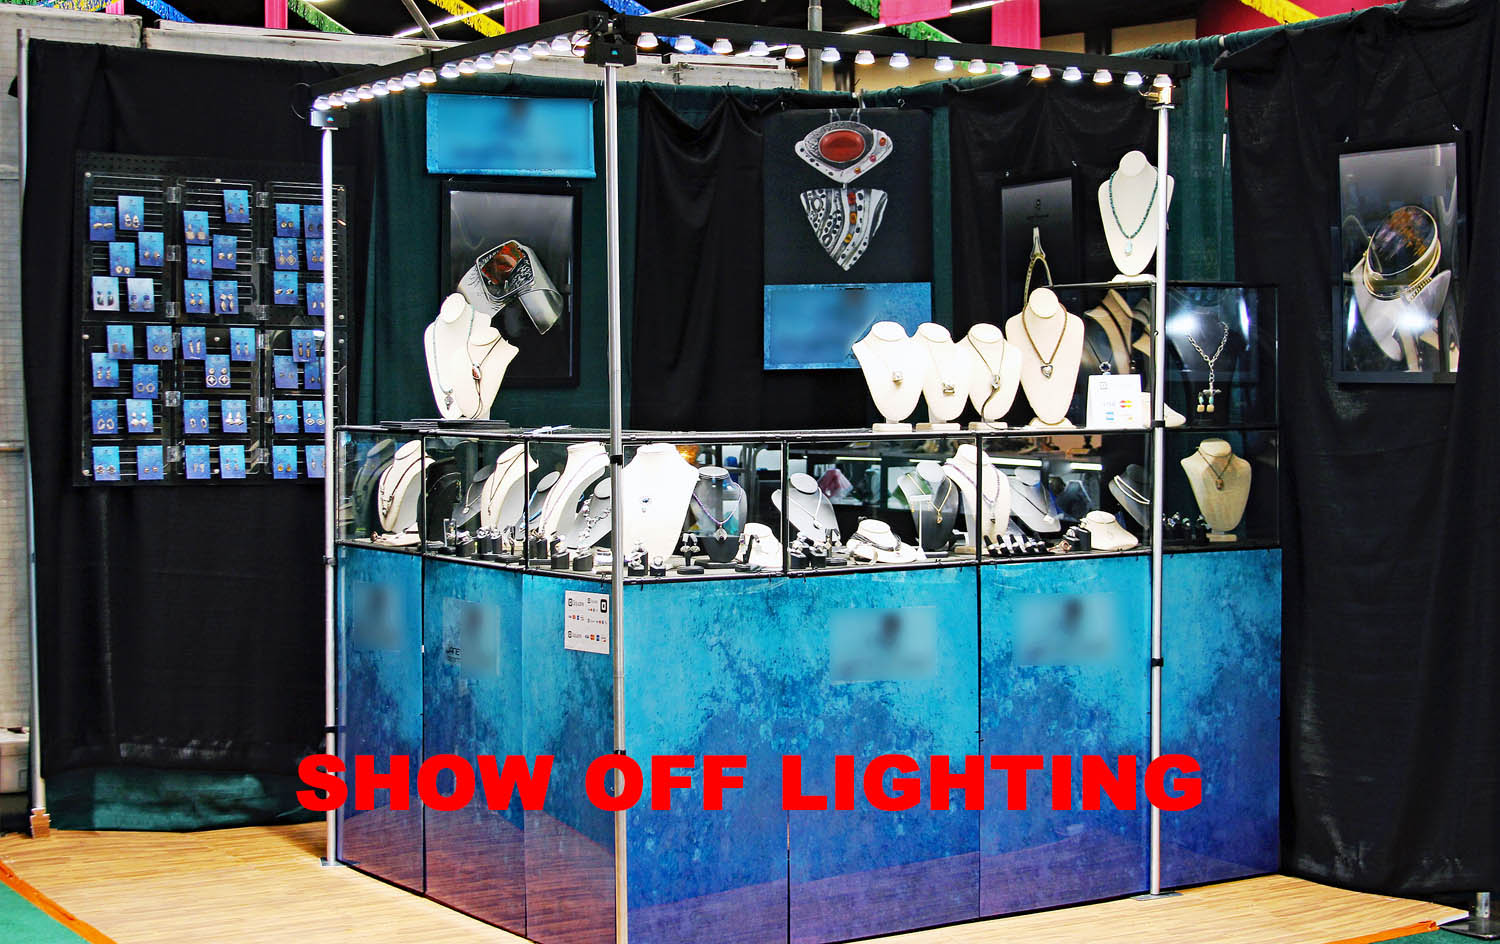 craft show lighting, craft show display lights, art show display lighting